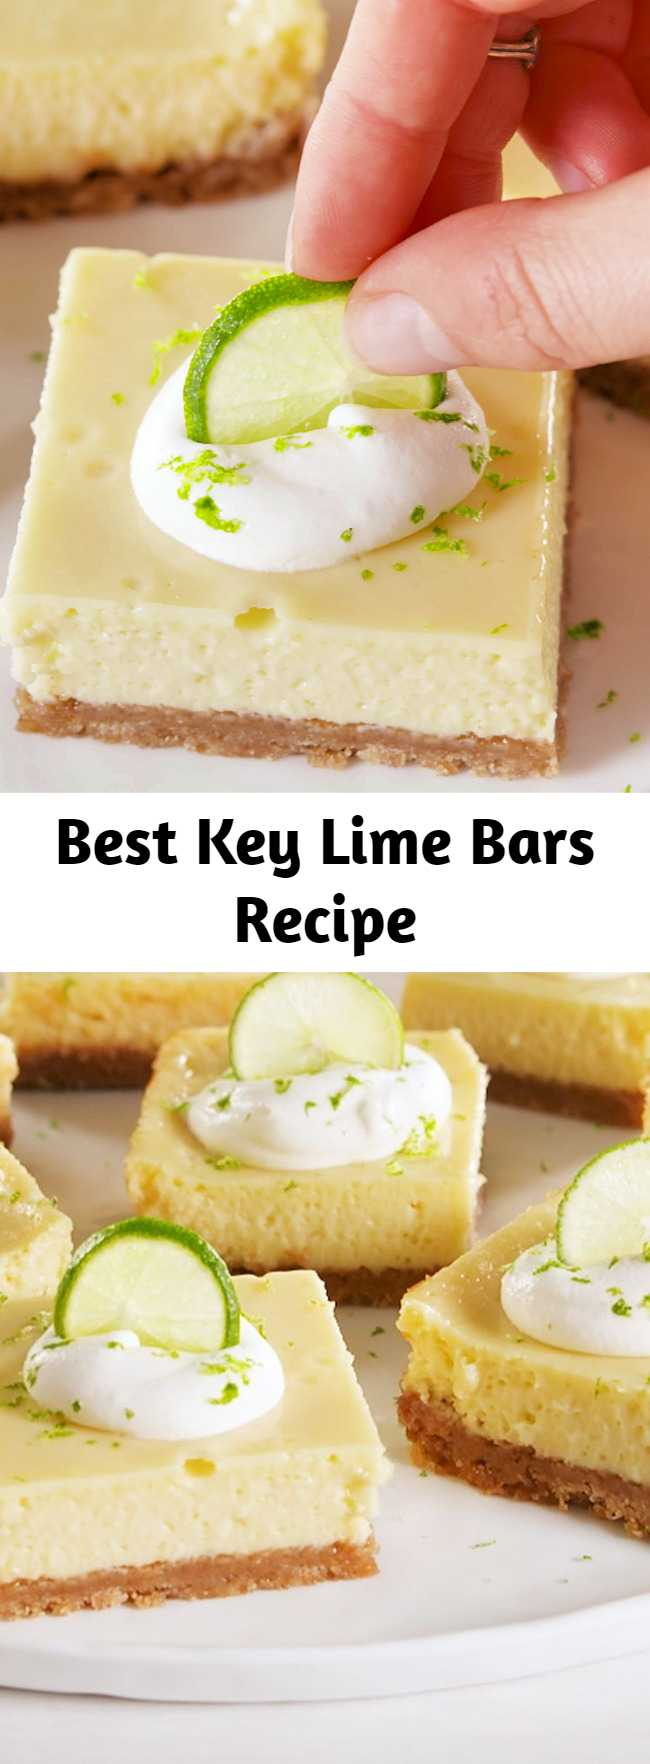 Best Key Lime Bars Recipe - No added sugar is needed in these bars! The ever-magical sweetened condensed milk provides all the sugar you need. #easyrecipe #dessert #baking #keylime #sweets